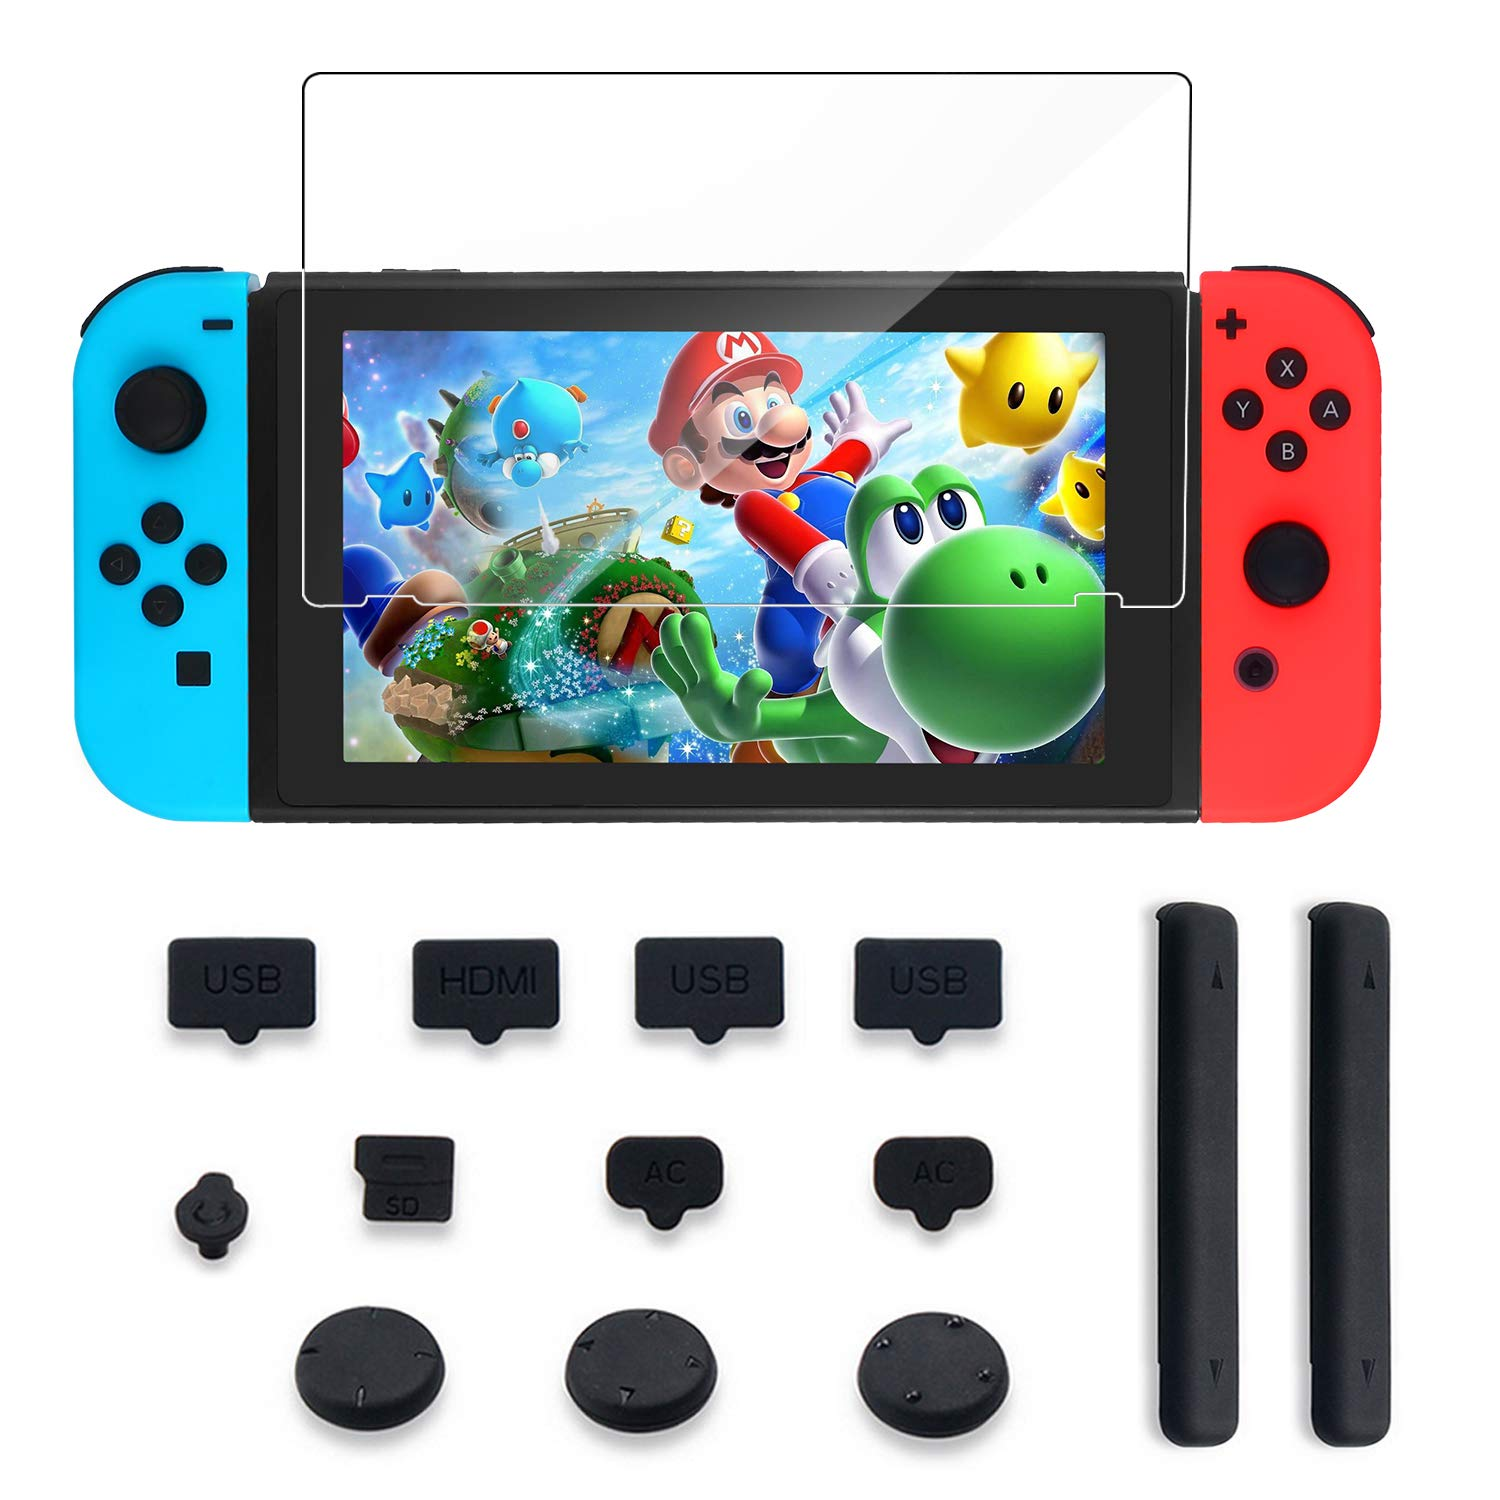 Protector Kit for Nintendo Switch Include Kingtop Nintendo Switch Tempered Glass Screen Protector+Dust Proof Rubber Plug Kit +Extension Card Slot by KINGTOP